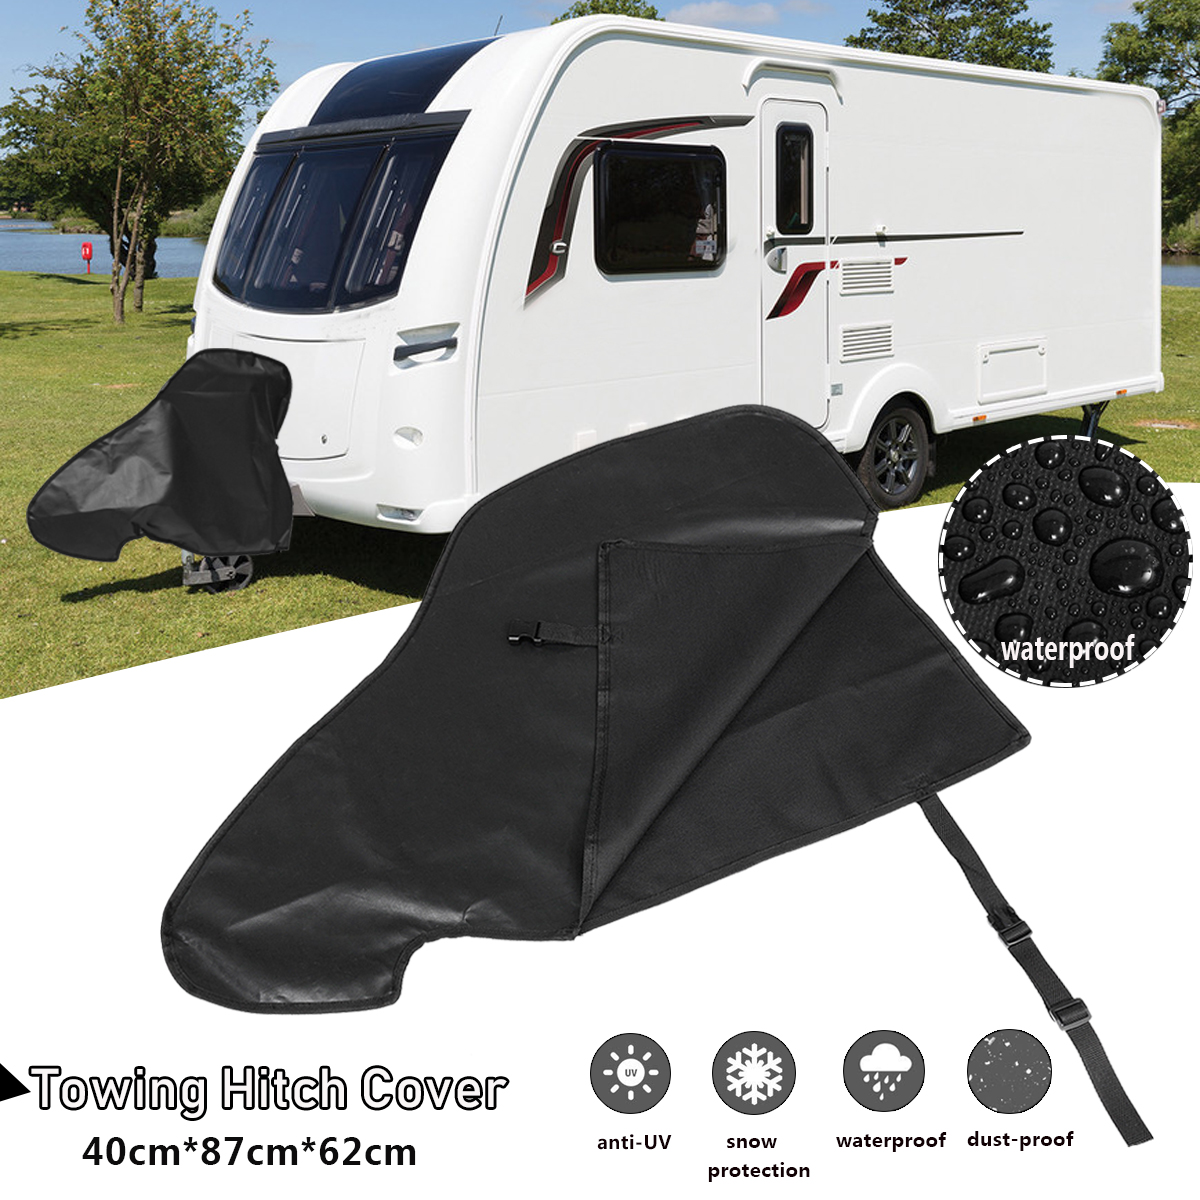 Dustproof-Protector Hitch-Cover Caravan Rain Rv-Tailer Waterproof Towing for 87x62x40cm